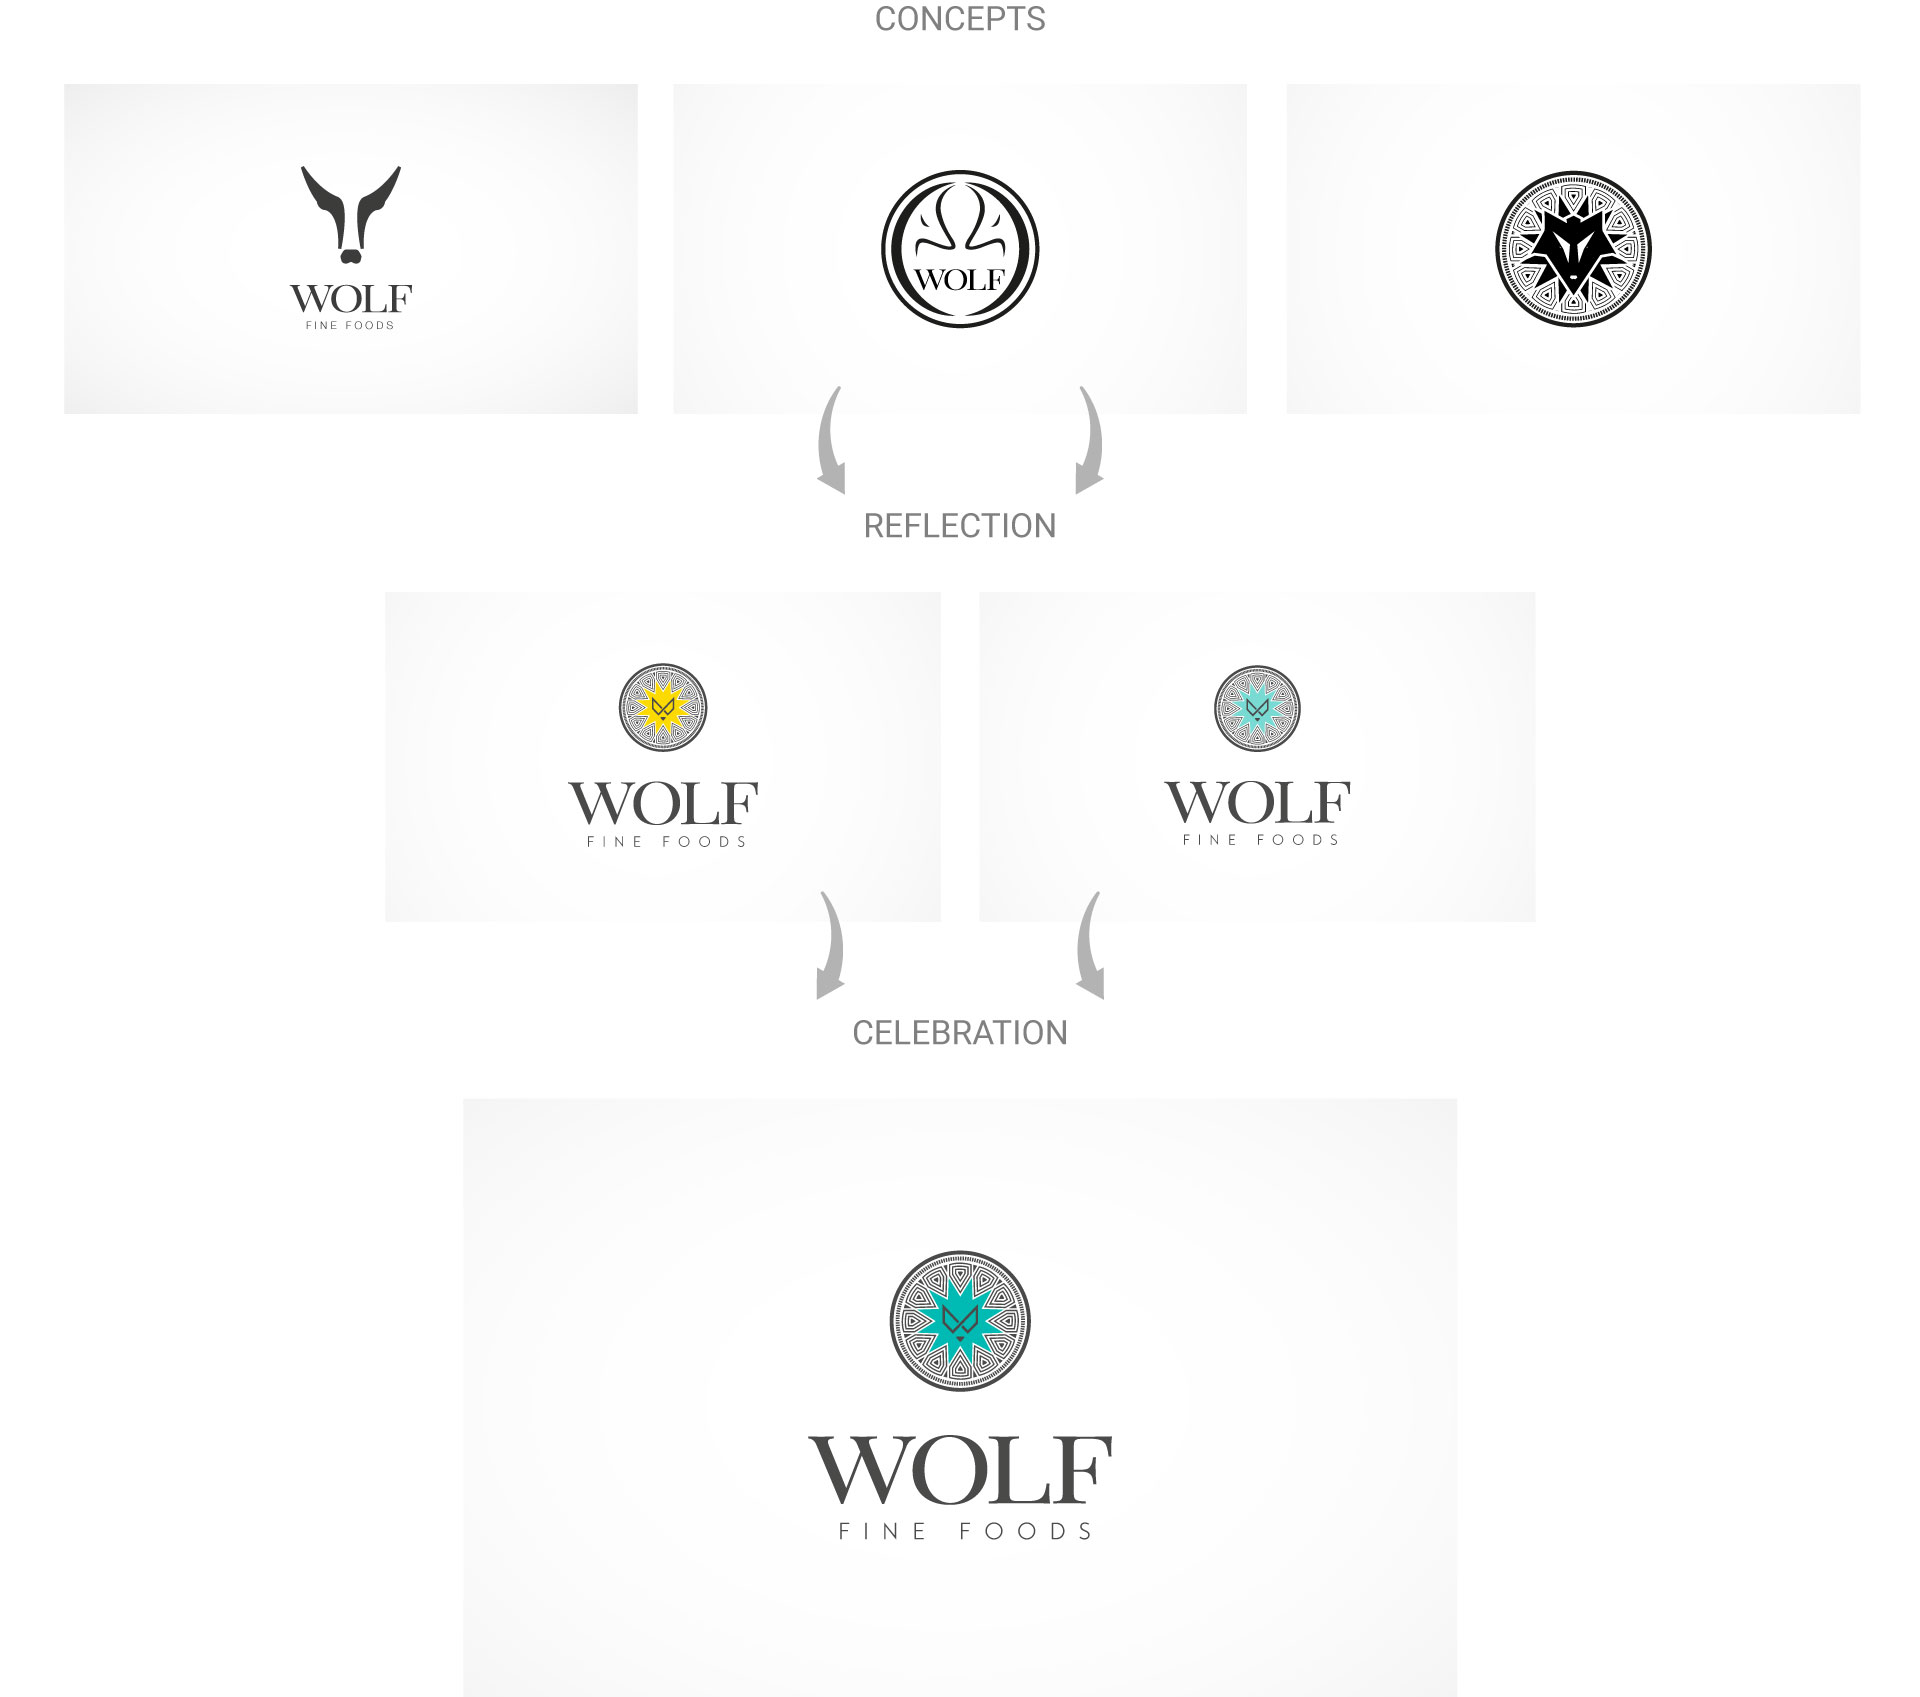 wolf-fine-foods-logo-design-process-by-mapleweb-vancouver-canada